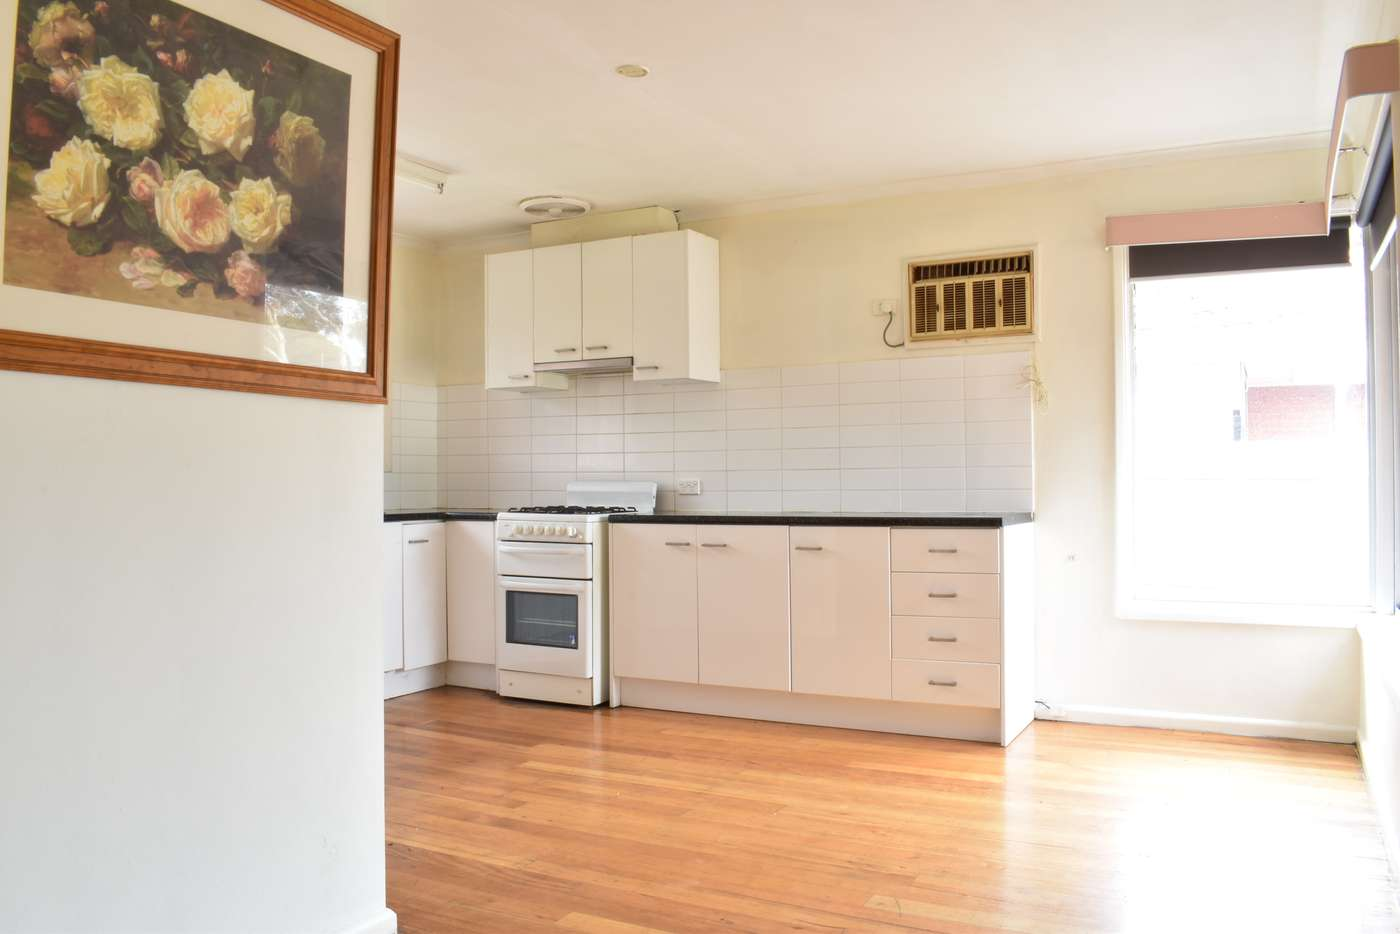 Main view of Homely house listing, 36 Talbot Avenue, Thomastown VIC 3074